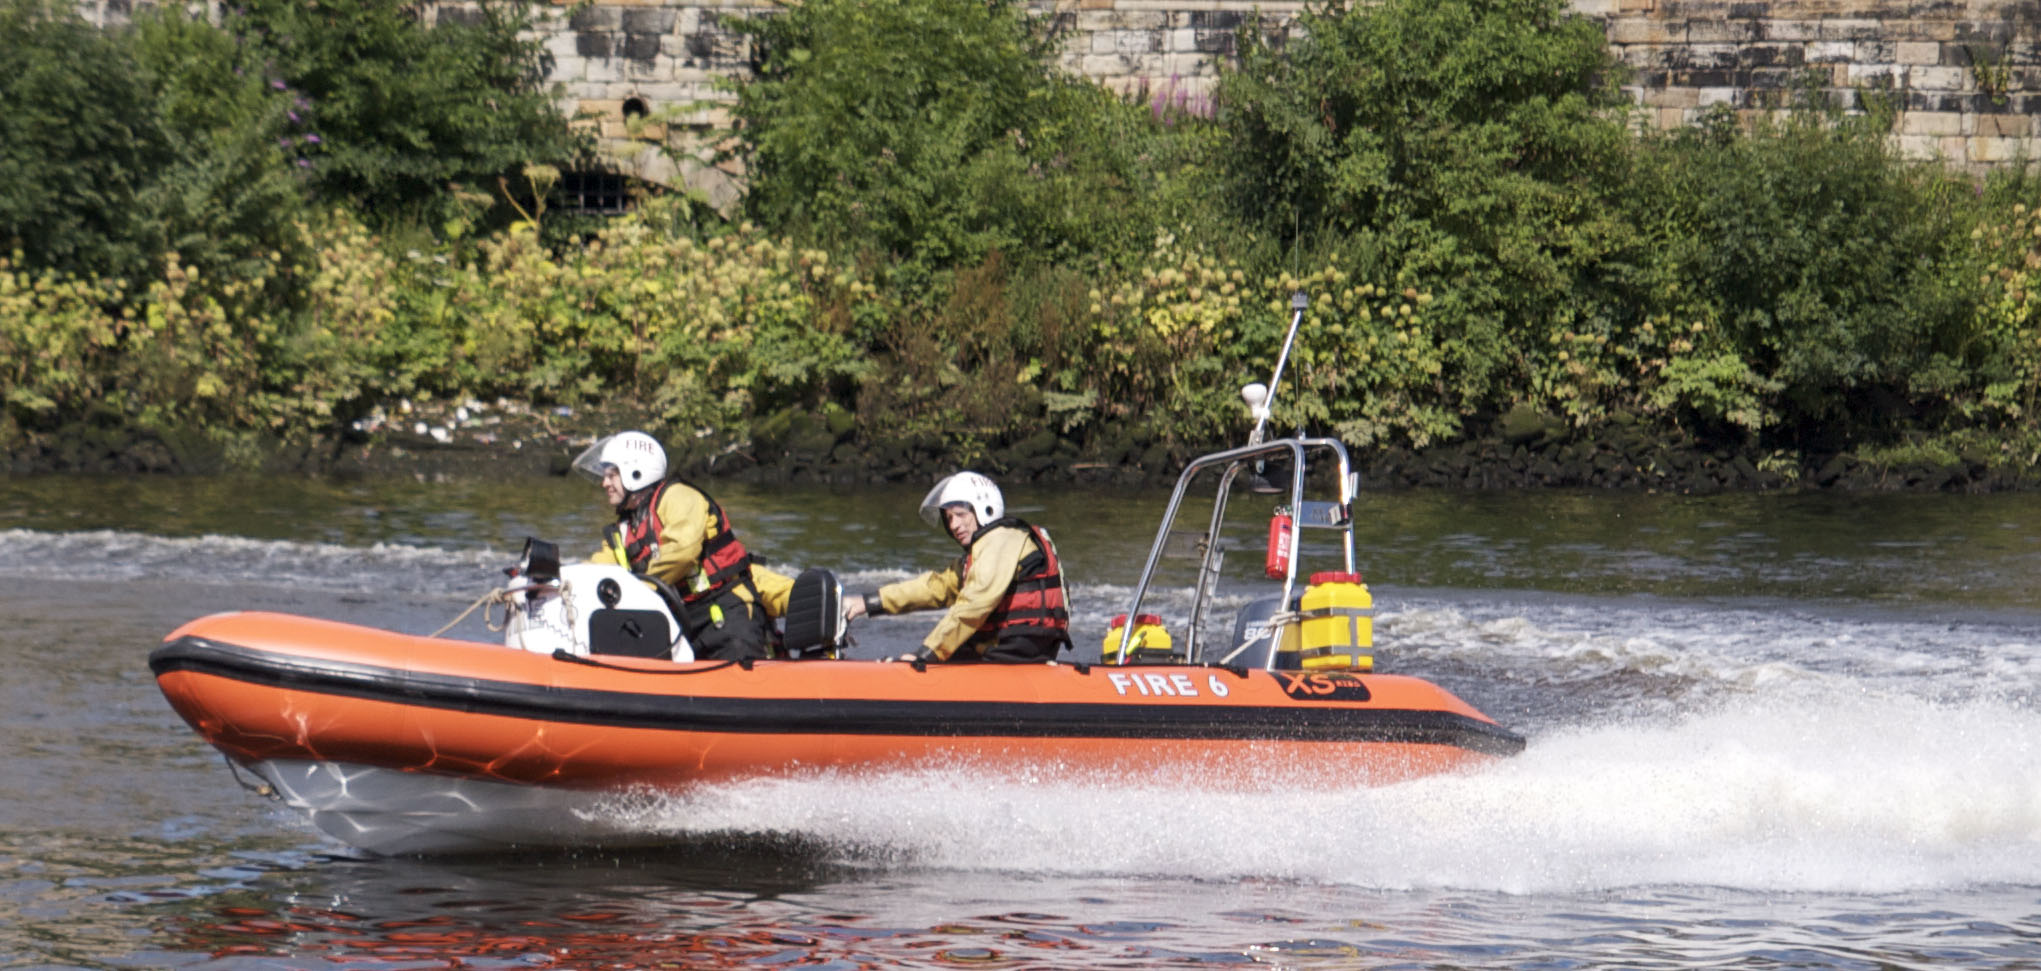 Specialist water rescue in Ayr